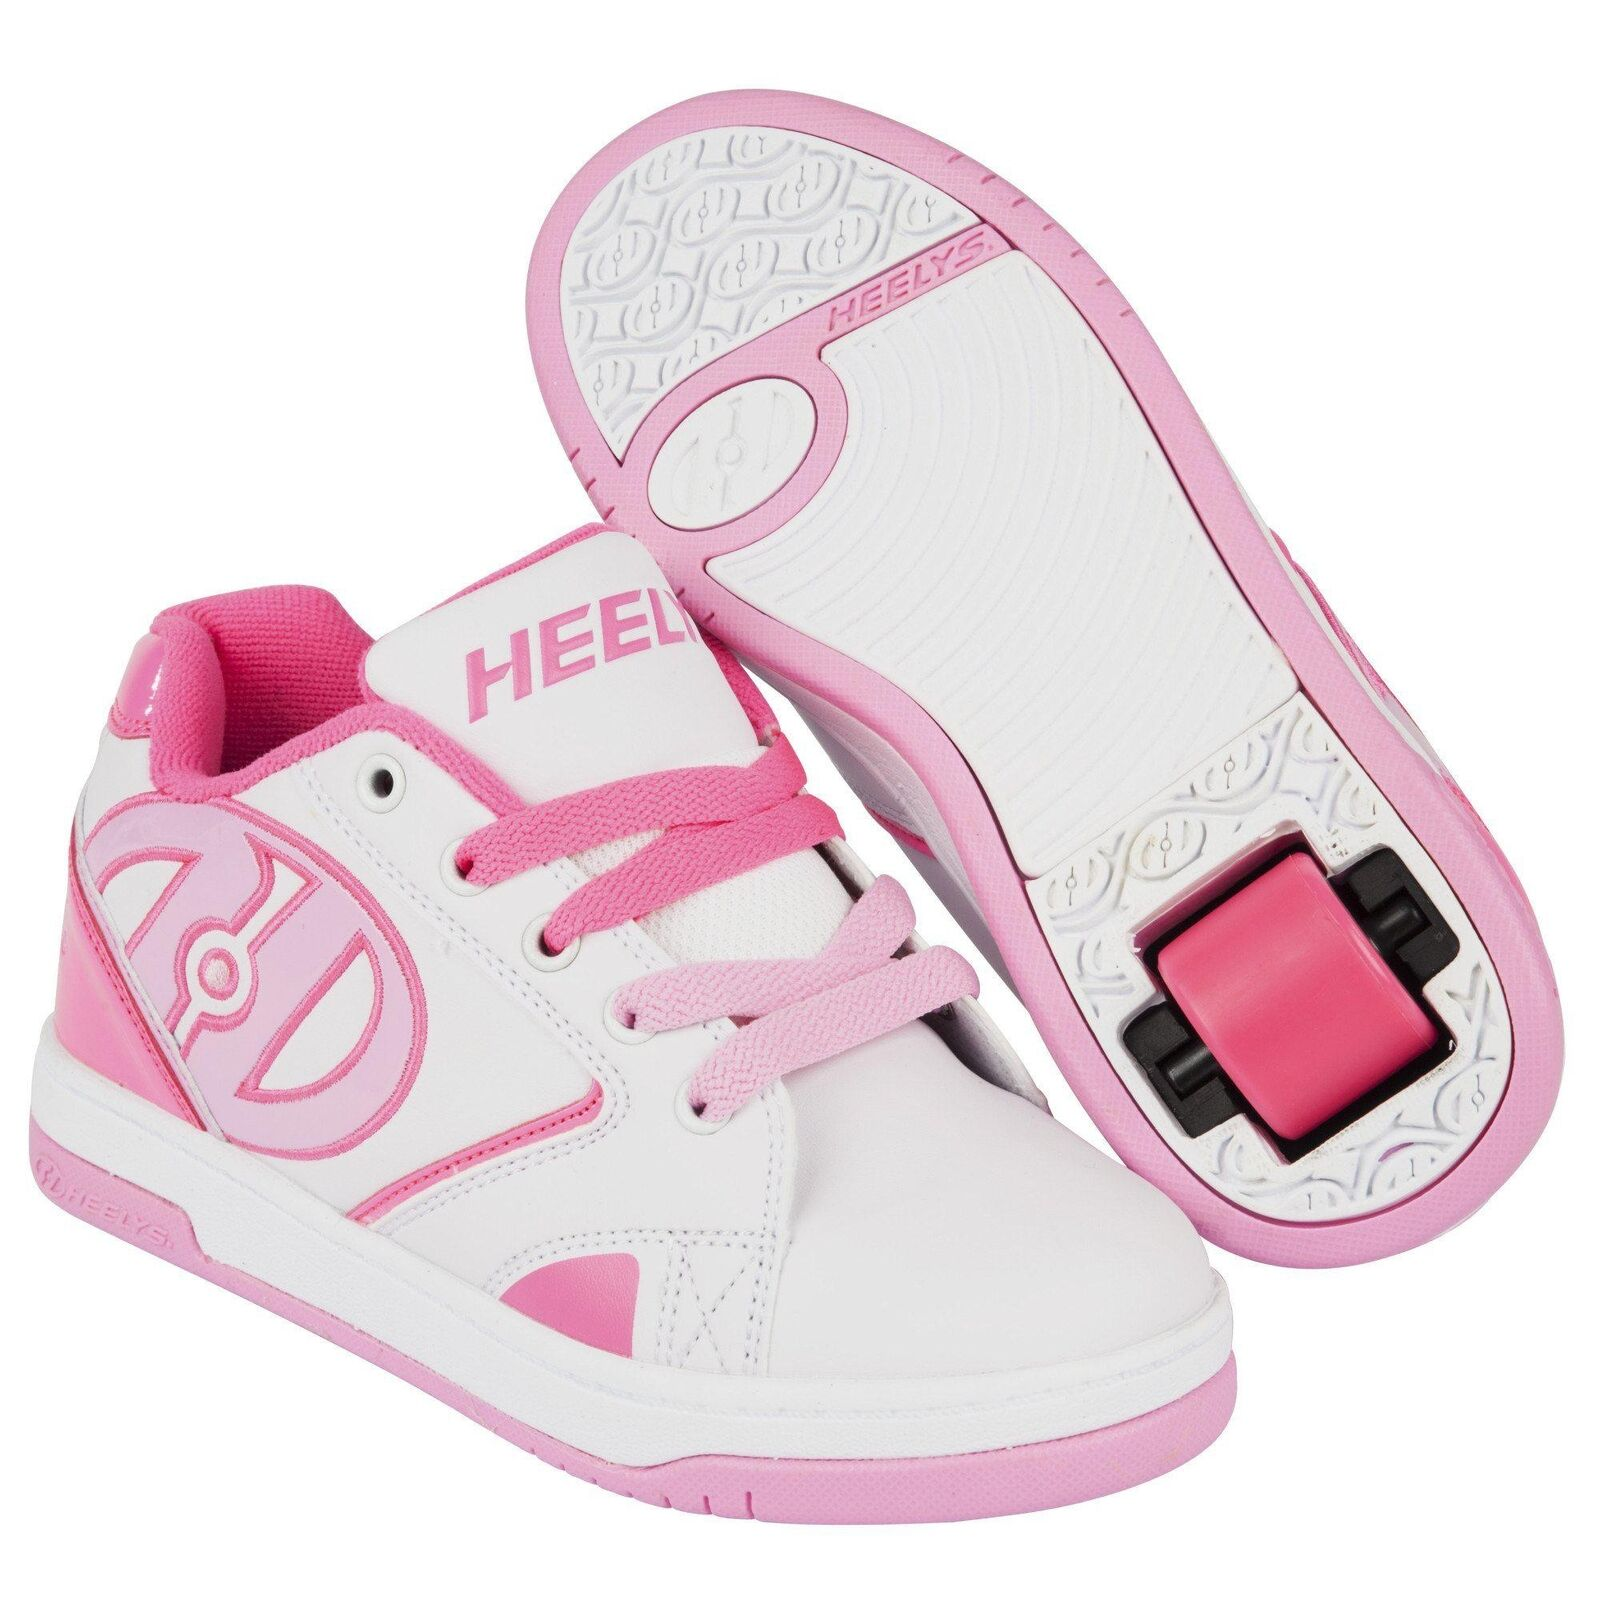 Heelys Propel 2.0 White Light Pink